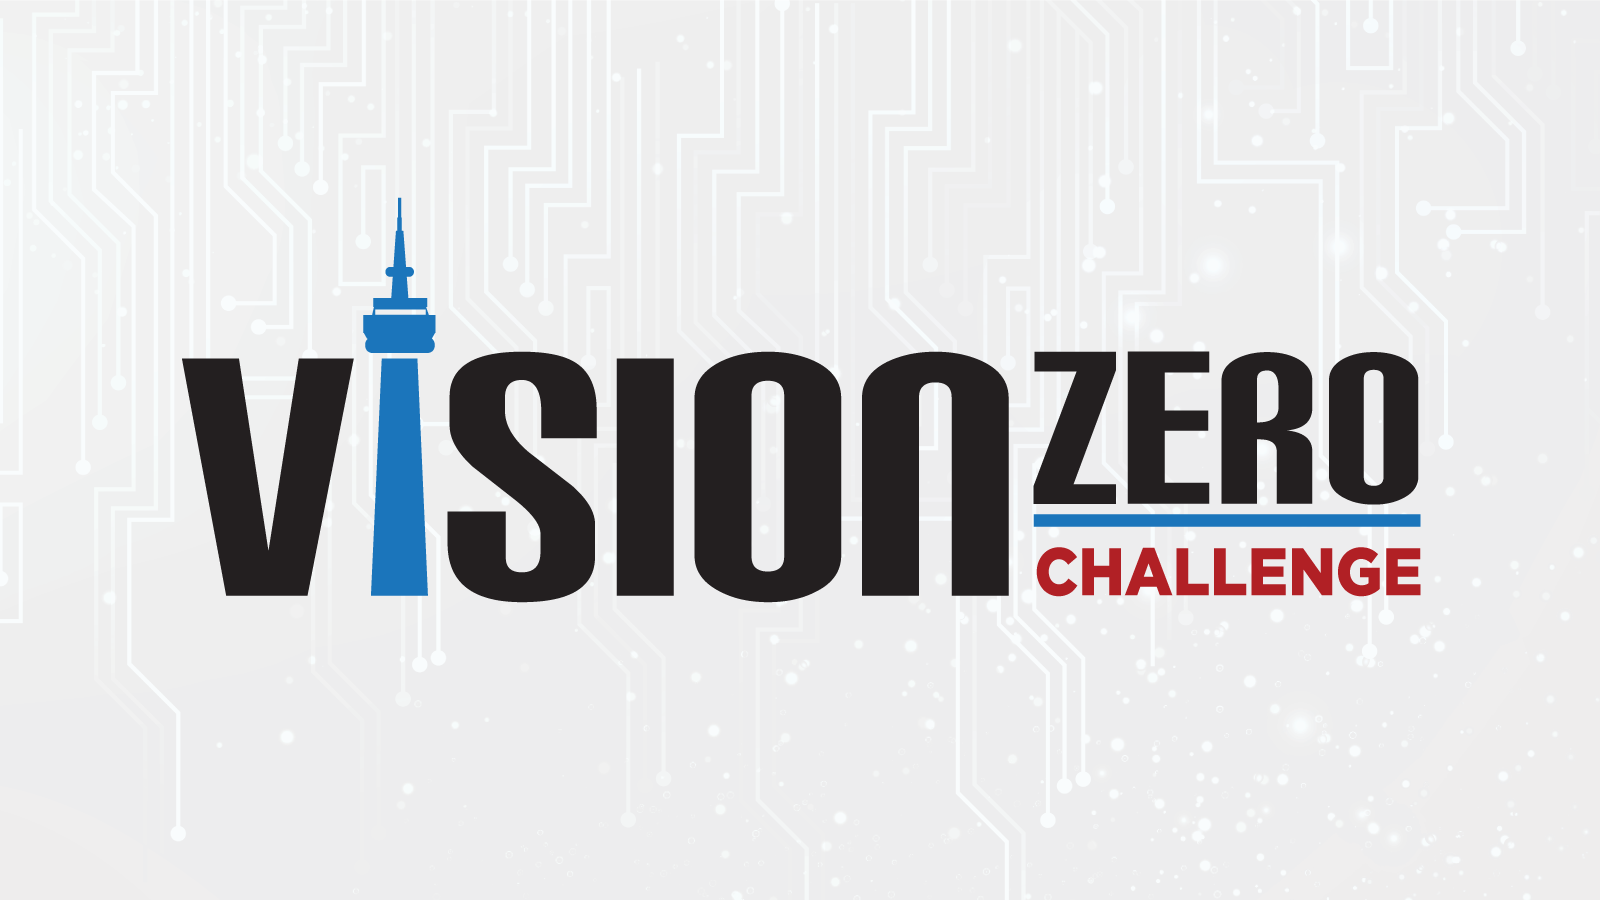 Announcing the launch of the Vision Zero Challenge